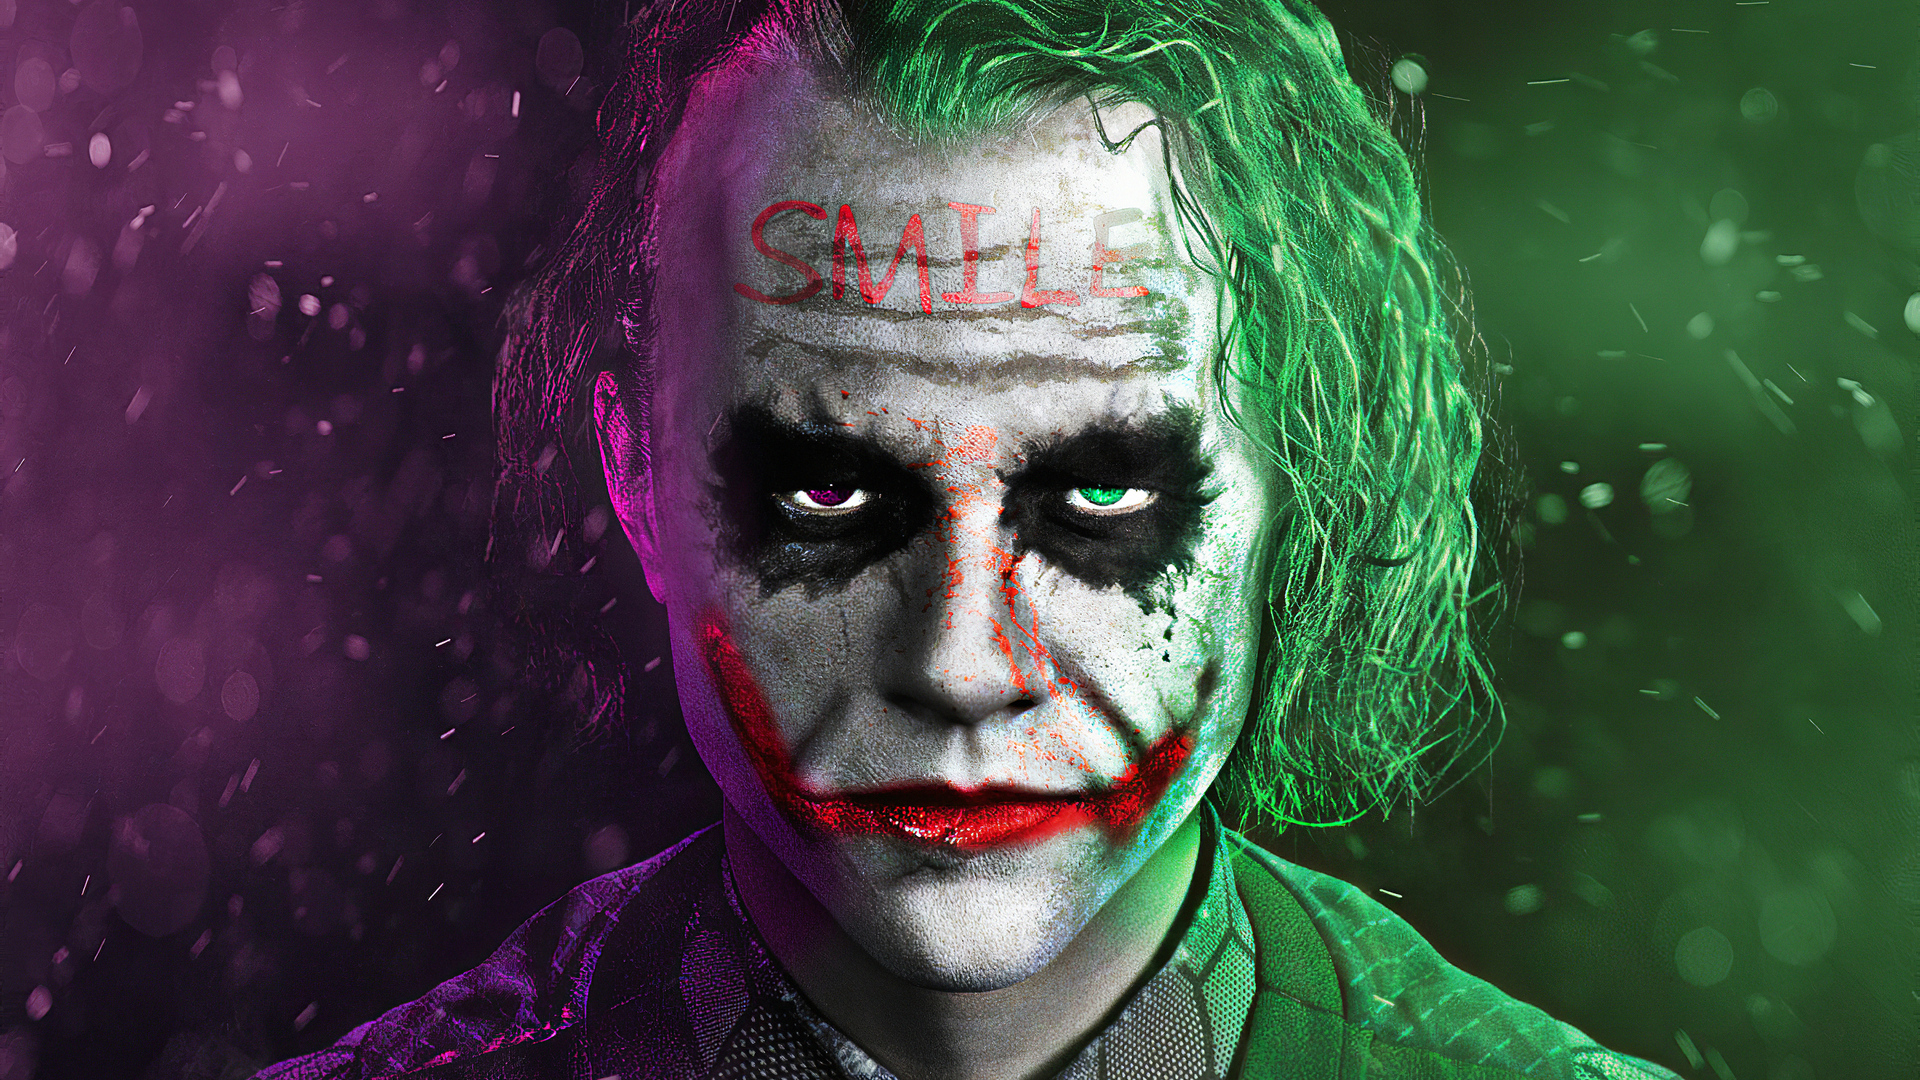 1920x1080 Joker Smile 4k Laptop Full HD 1080P HD 4k ...